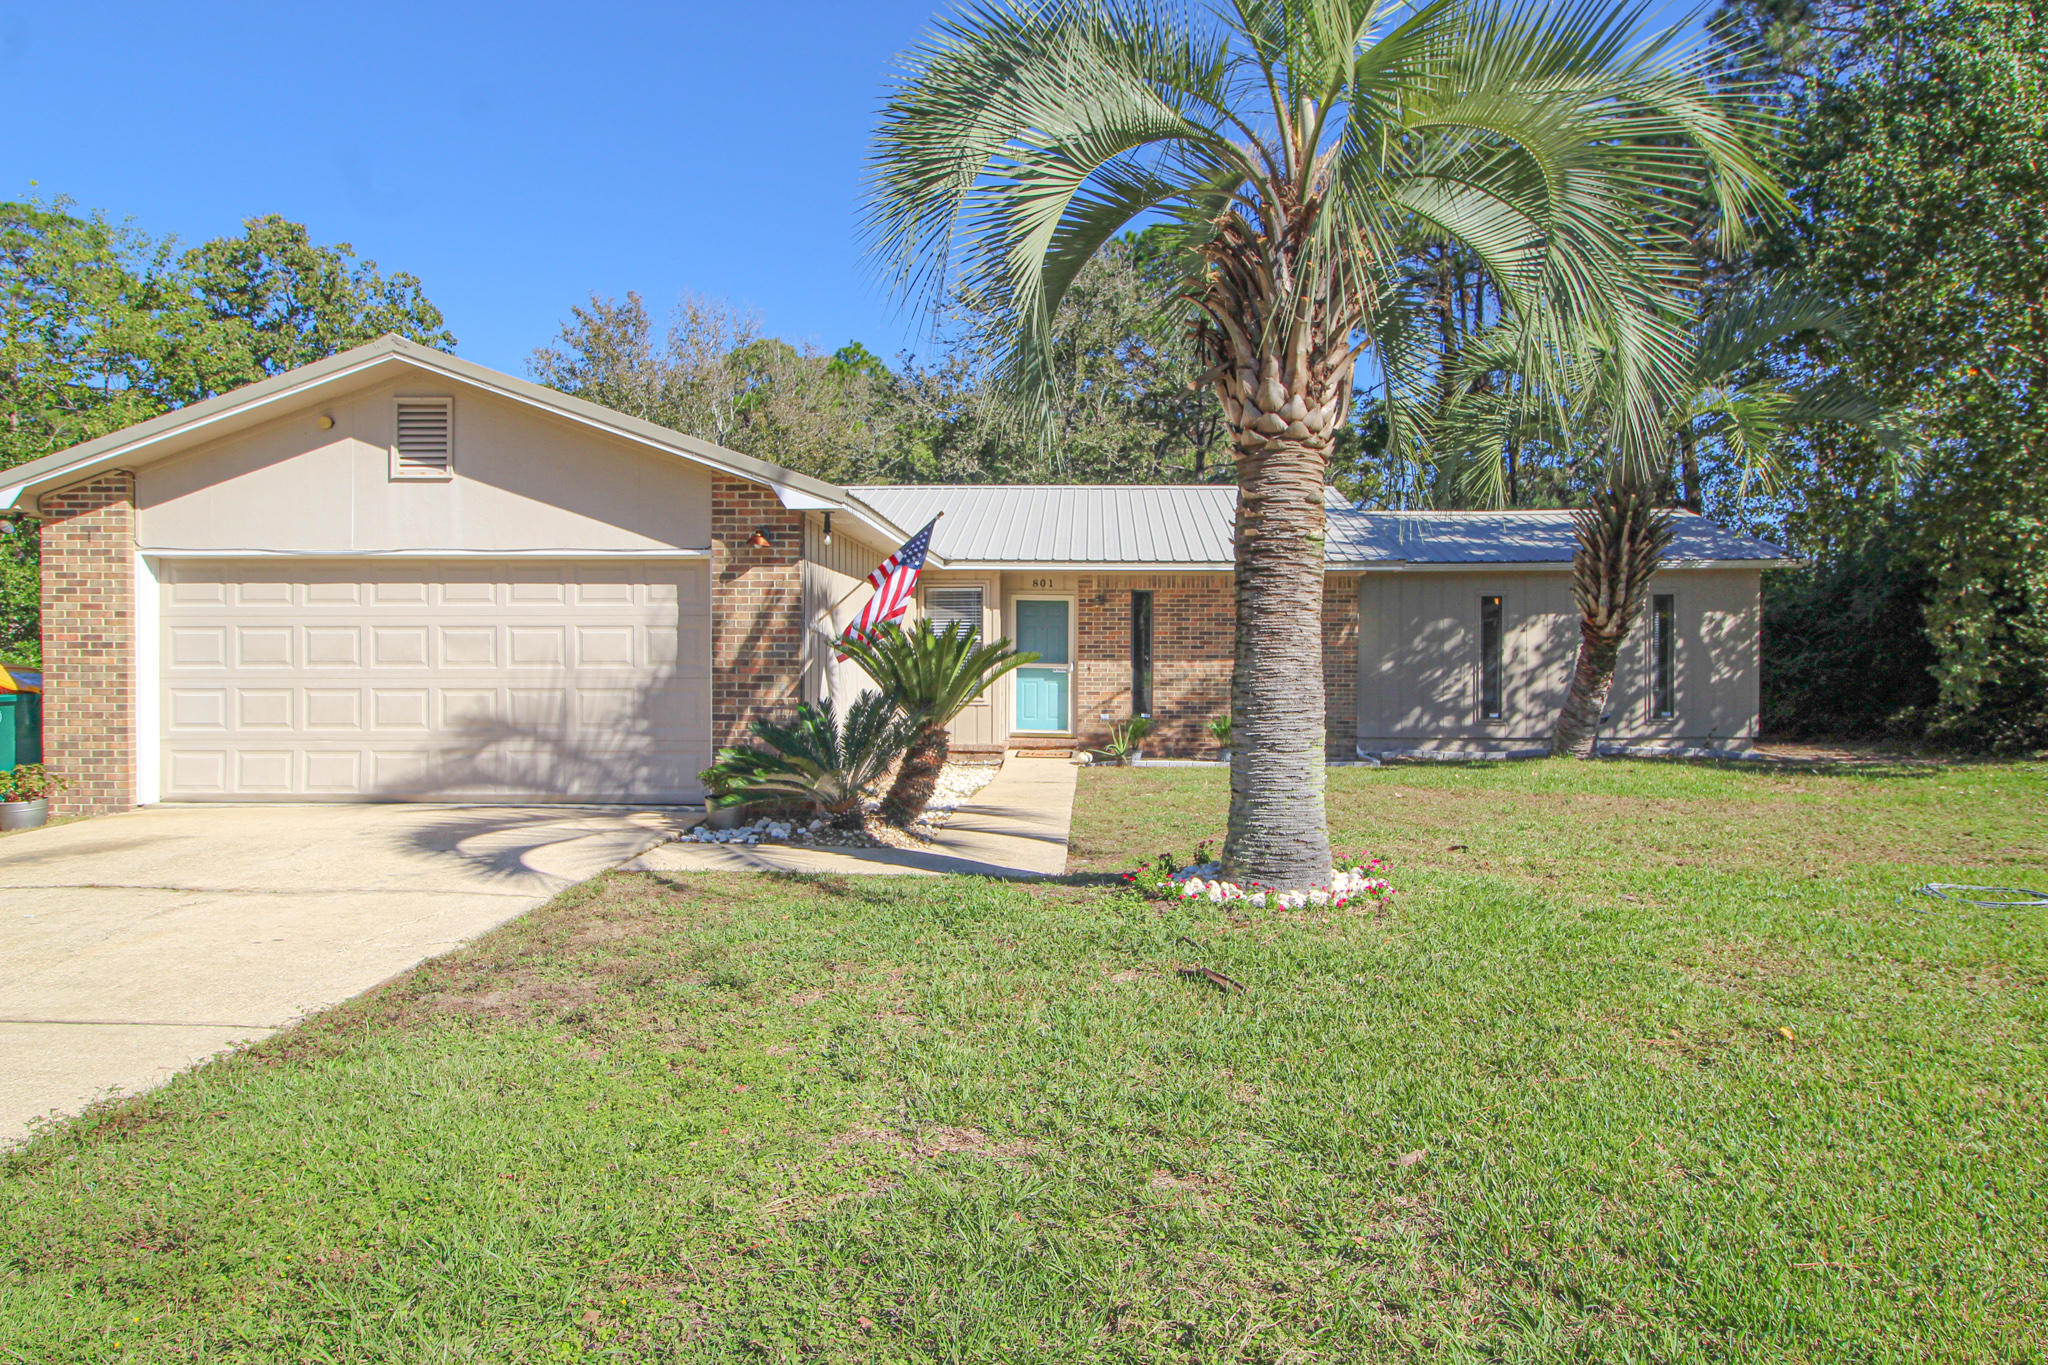 Photo of home for sale at 801 Loblolly, Fort Walton Beach FL